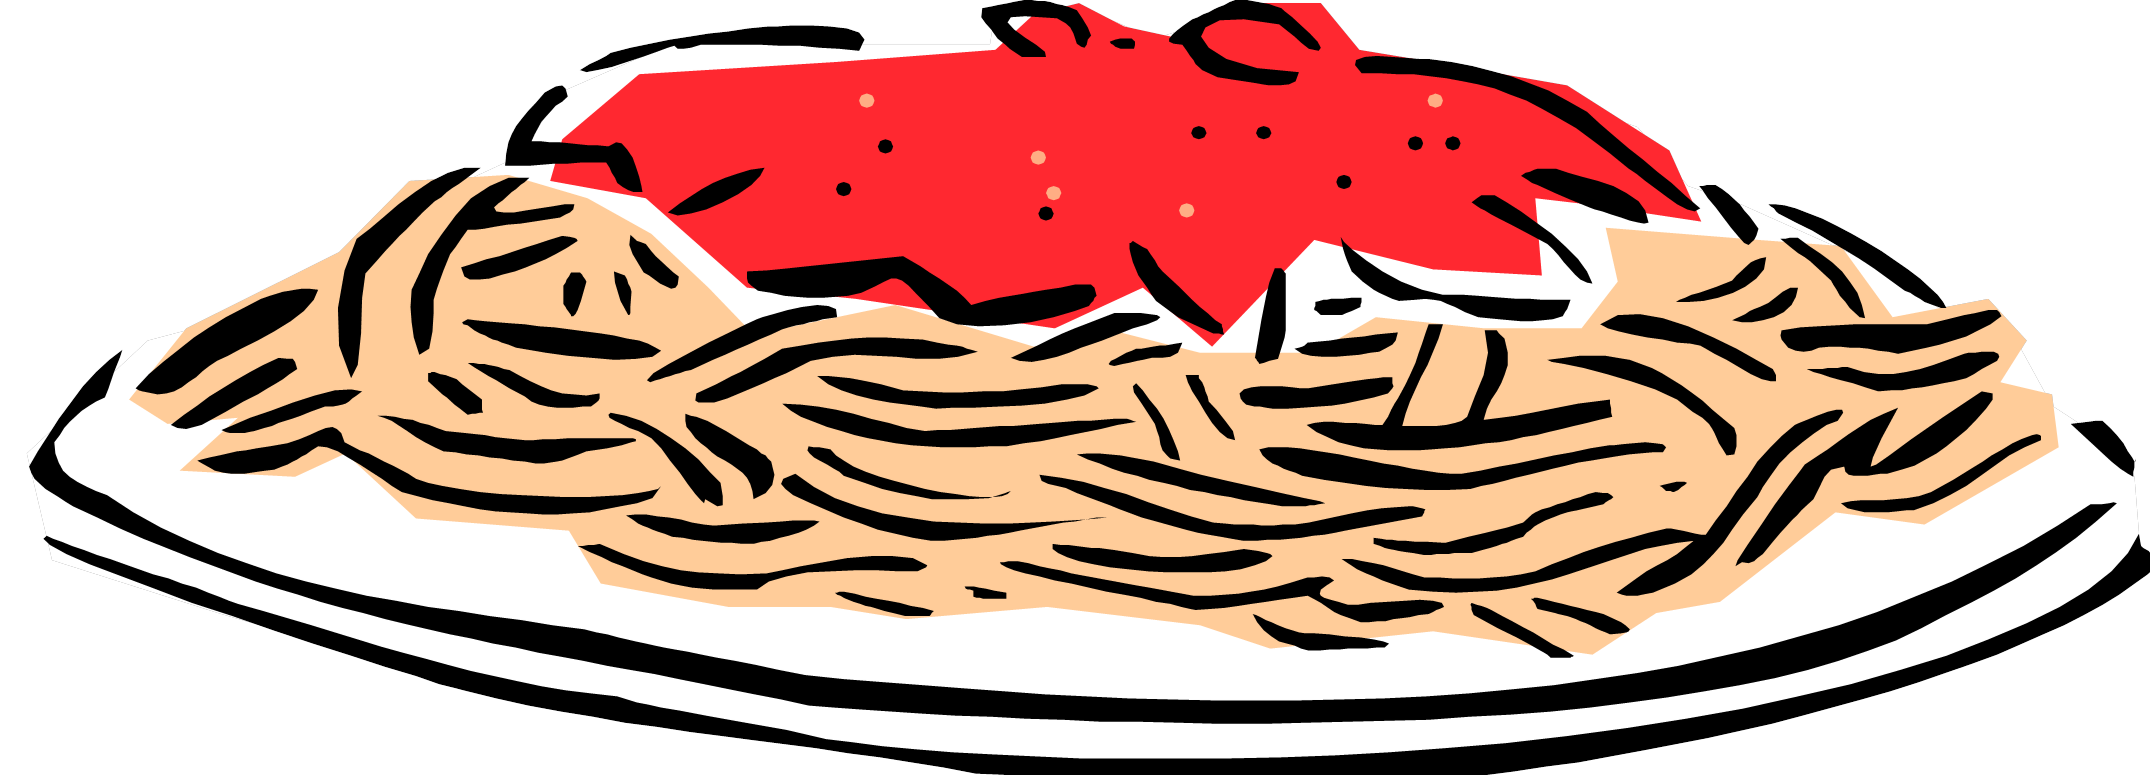 Free spaghetti clipart images